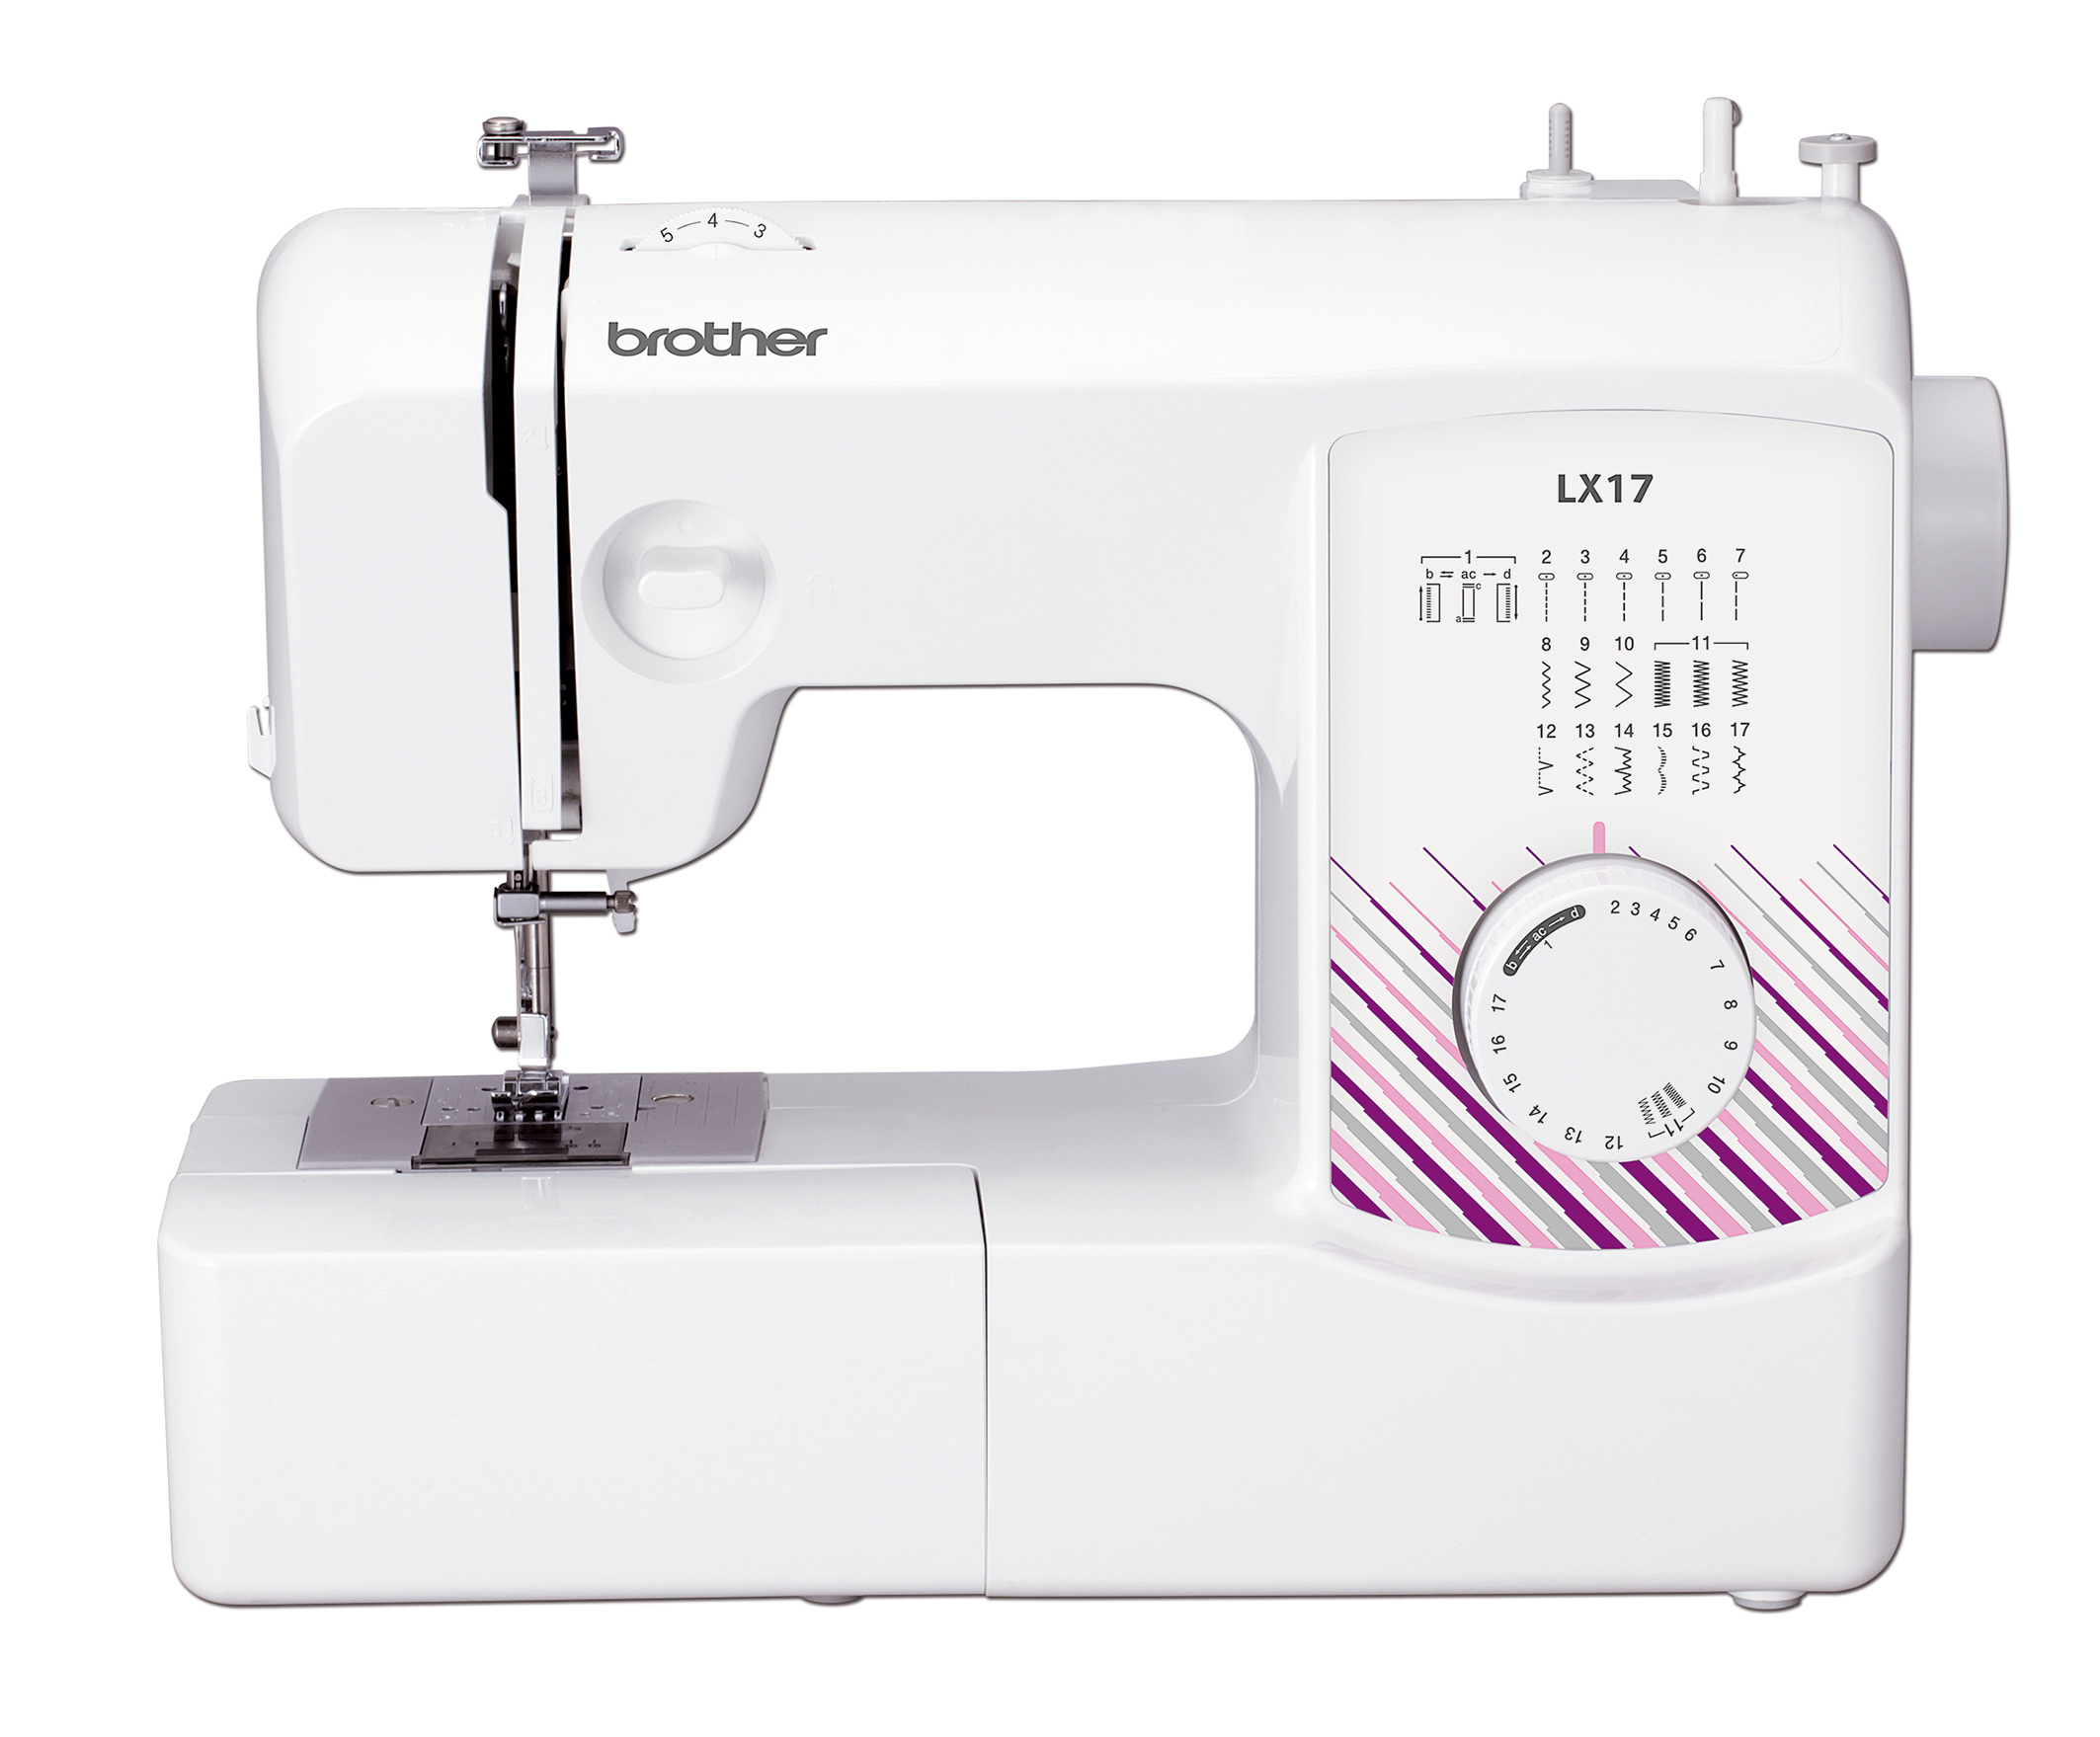 brother fs 101 sewing review